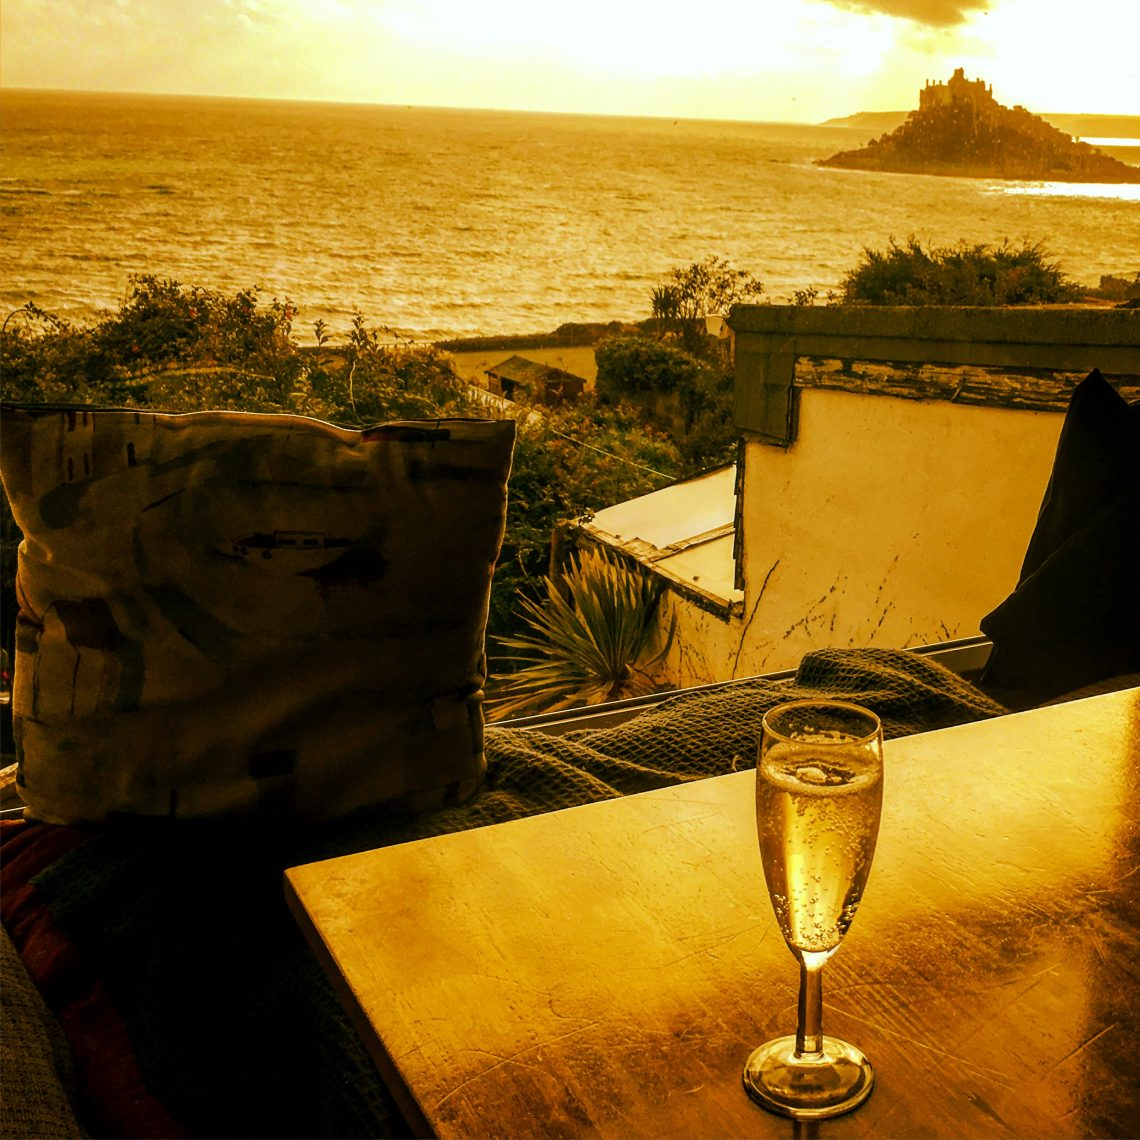 Prosecco o'clock at St Michael's Mount by KJ Duffield